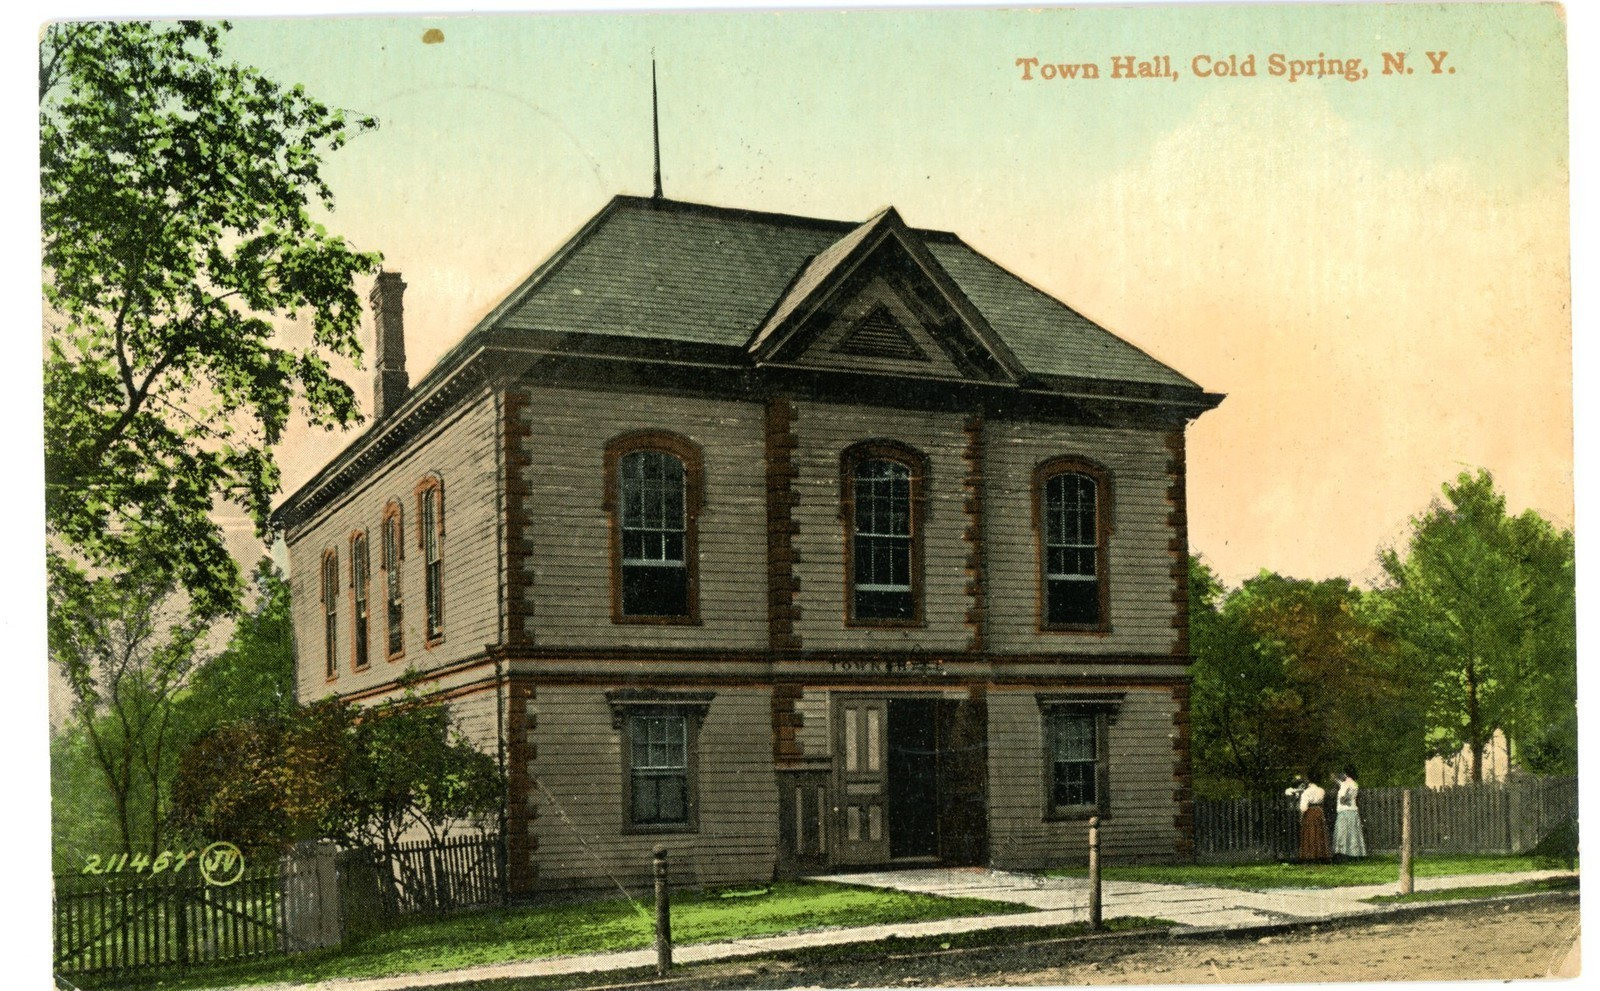 image 8 cold spring town hall